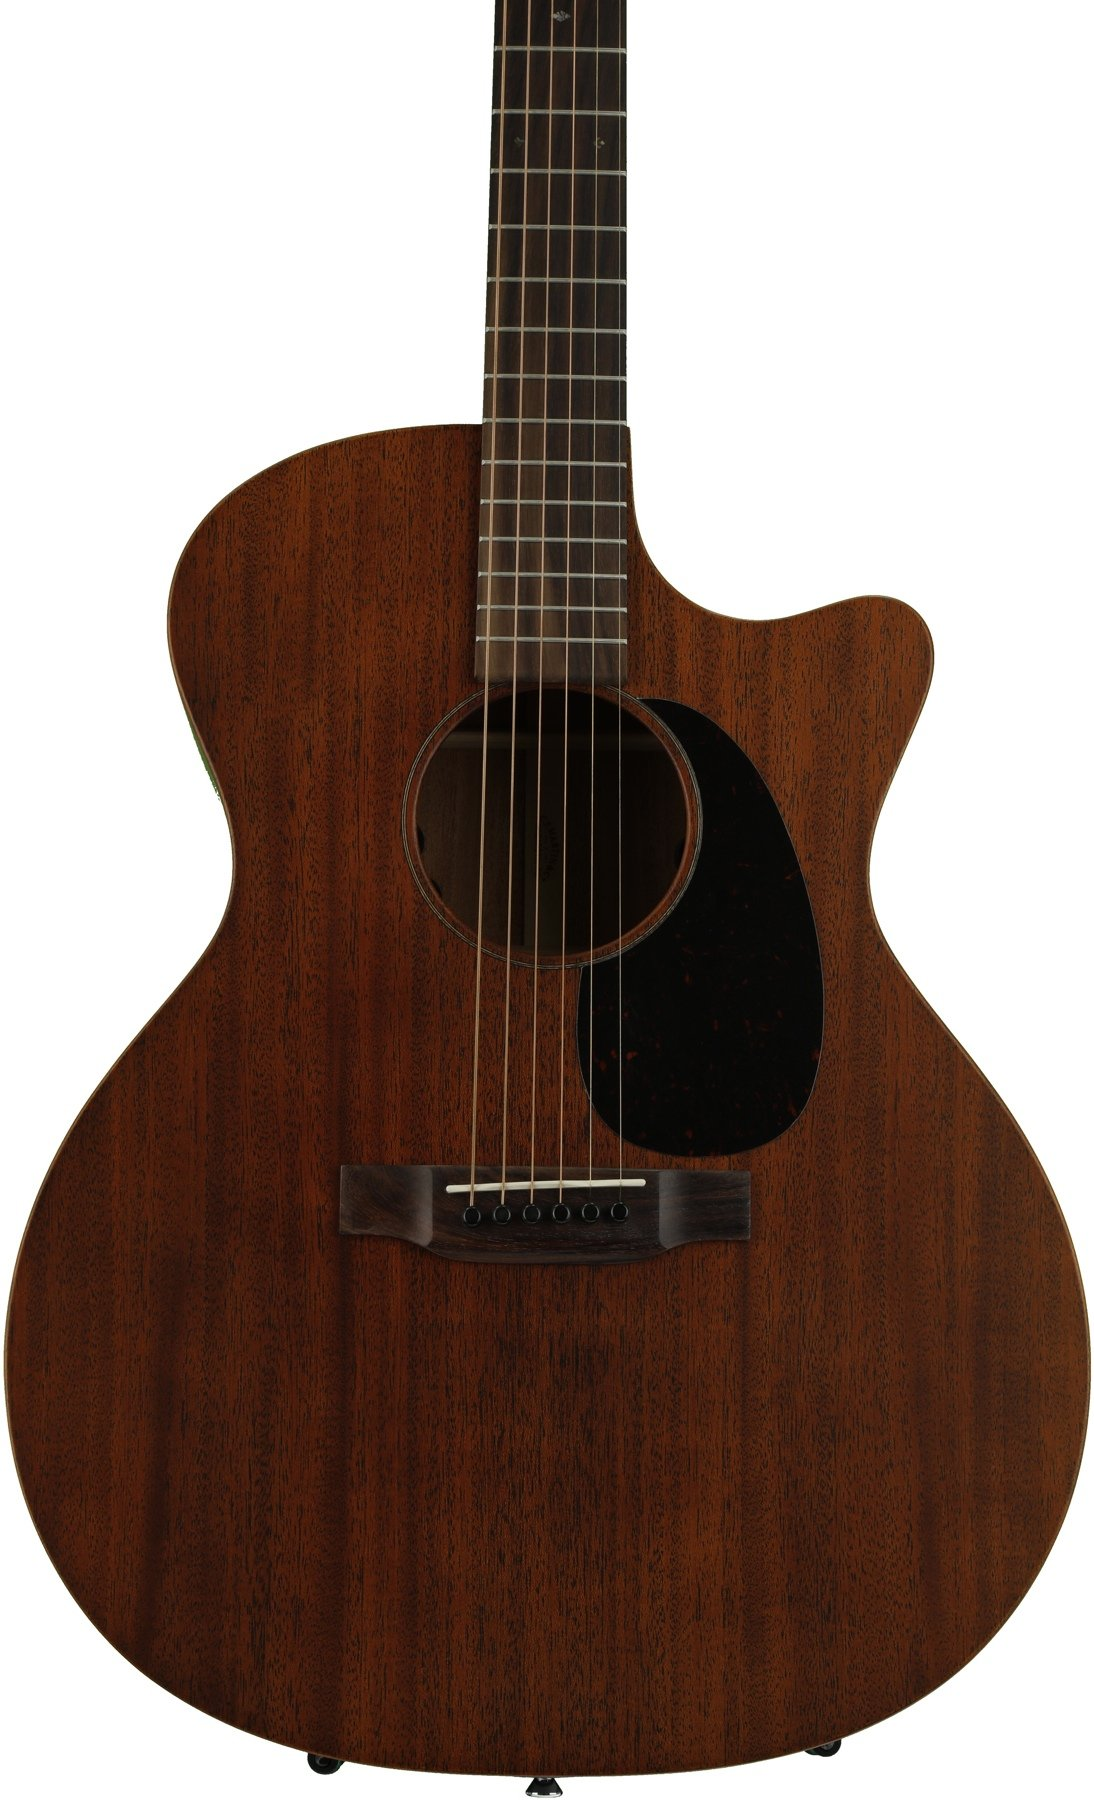 Martin Gpc 15me Natural Sweetwater